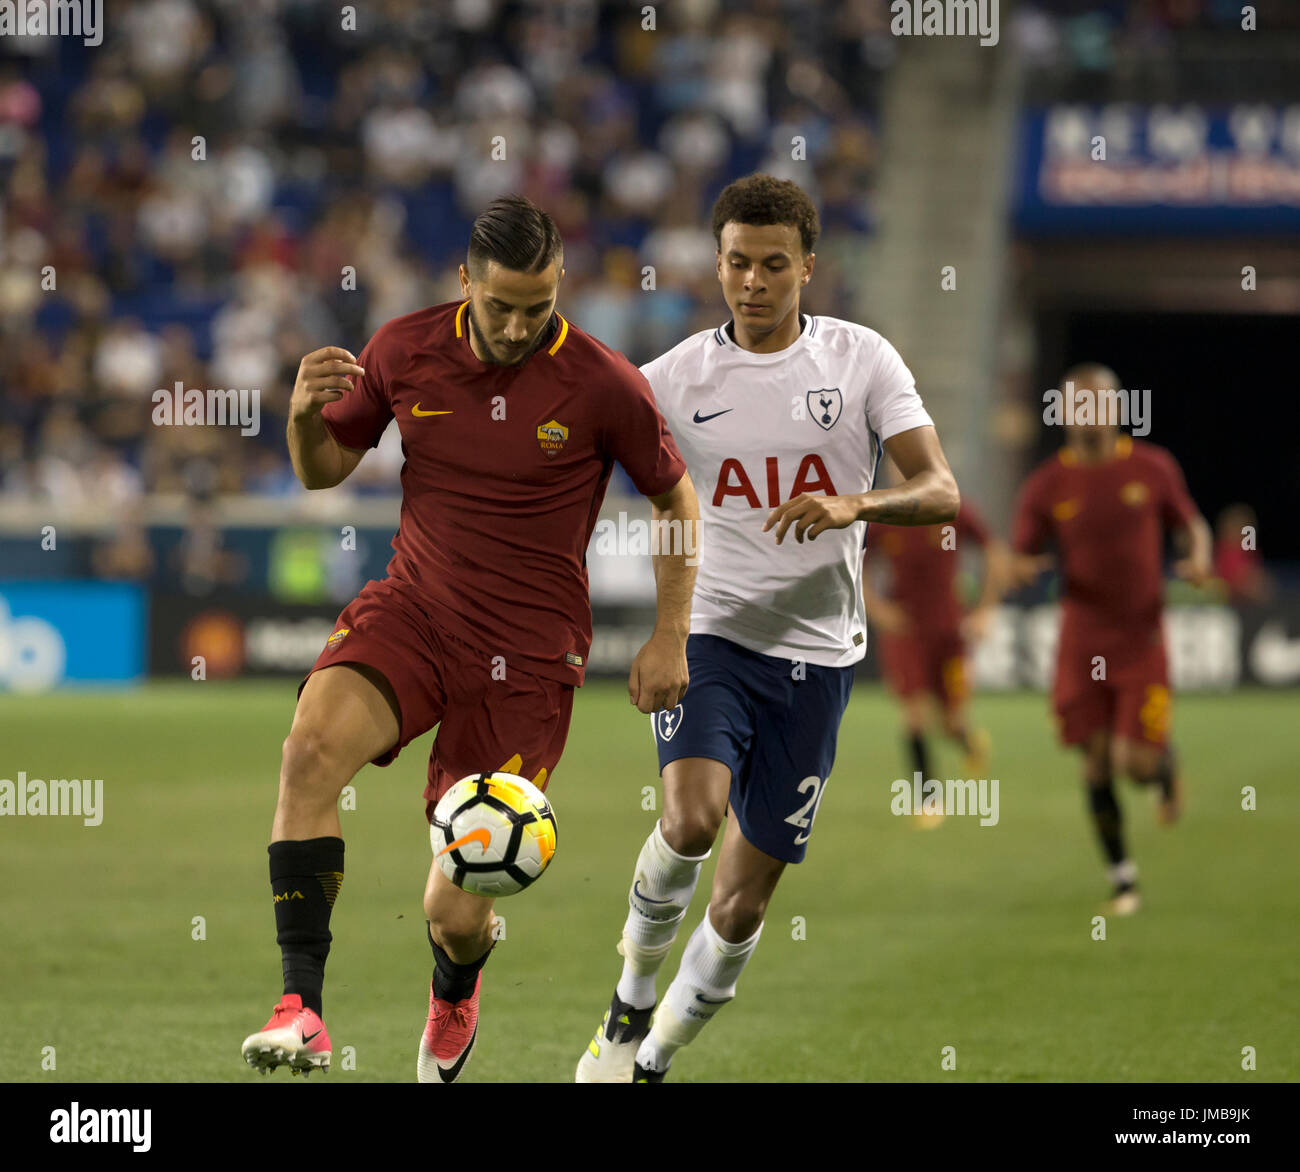 Toby Alderweireld And Dele Alli Photos Photos: Dele Alli 2017 Stock Photos & Dele Alli 2017 Stock Images